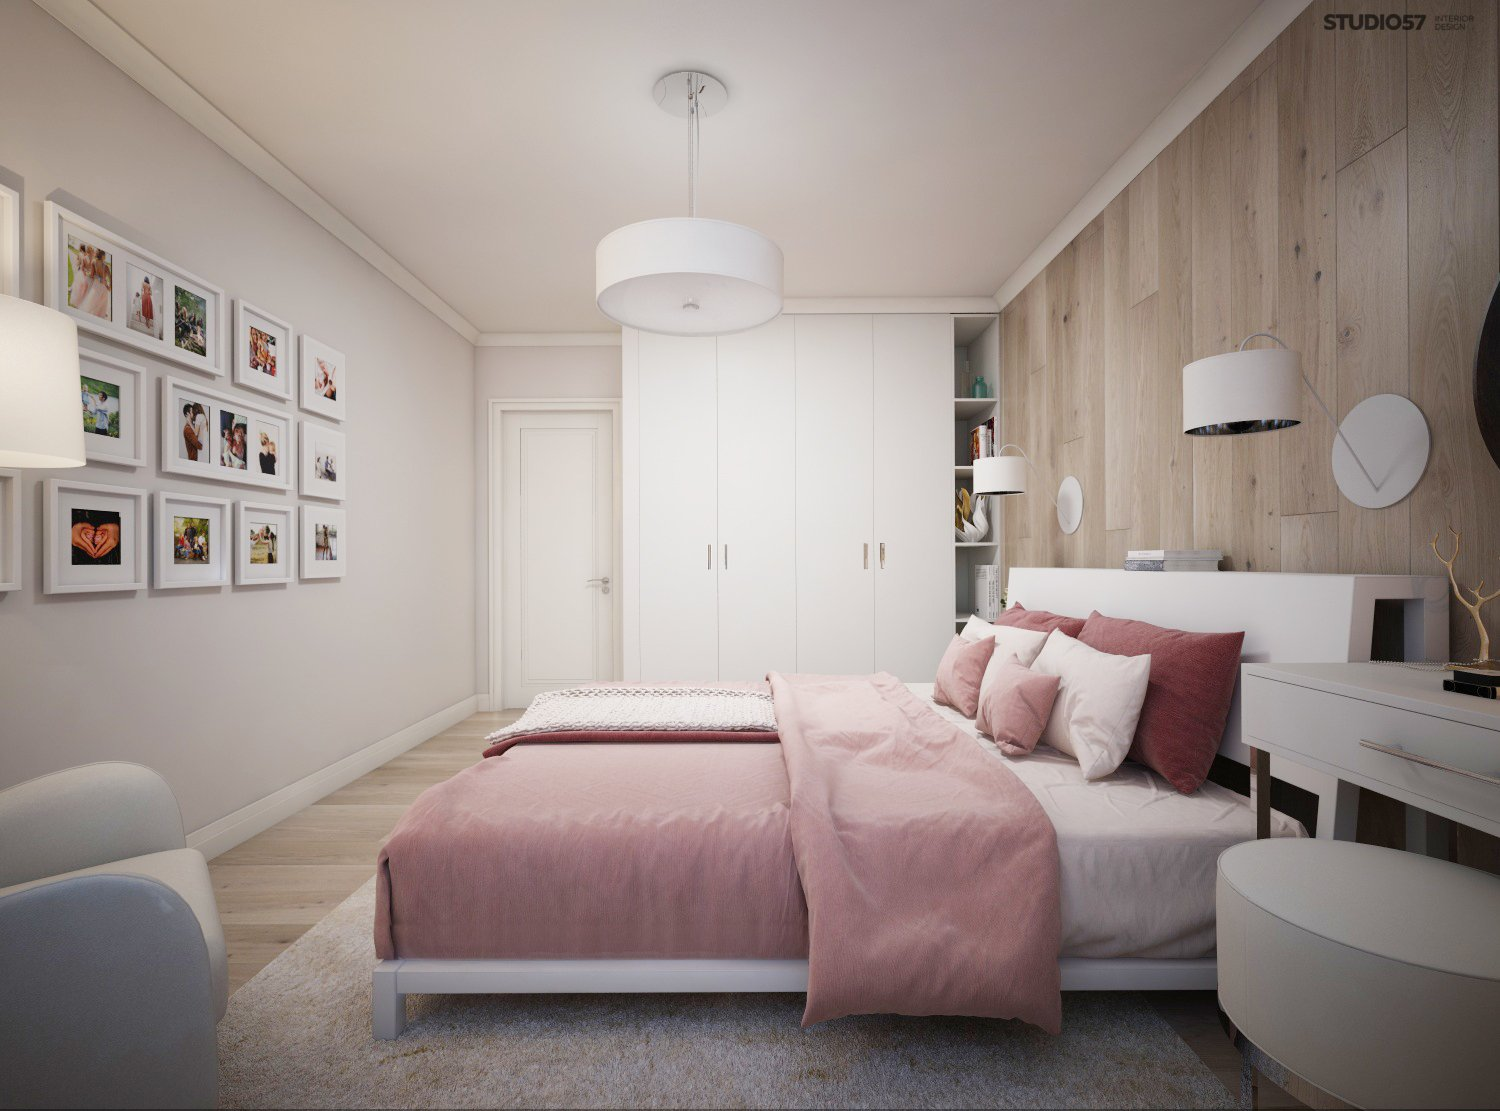 Bedroom in pink color picture